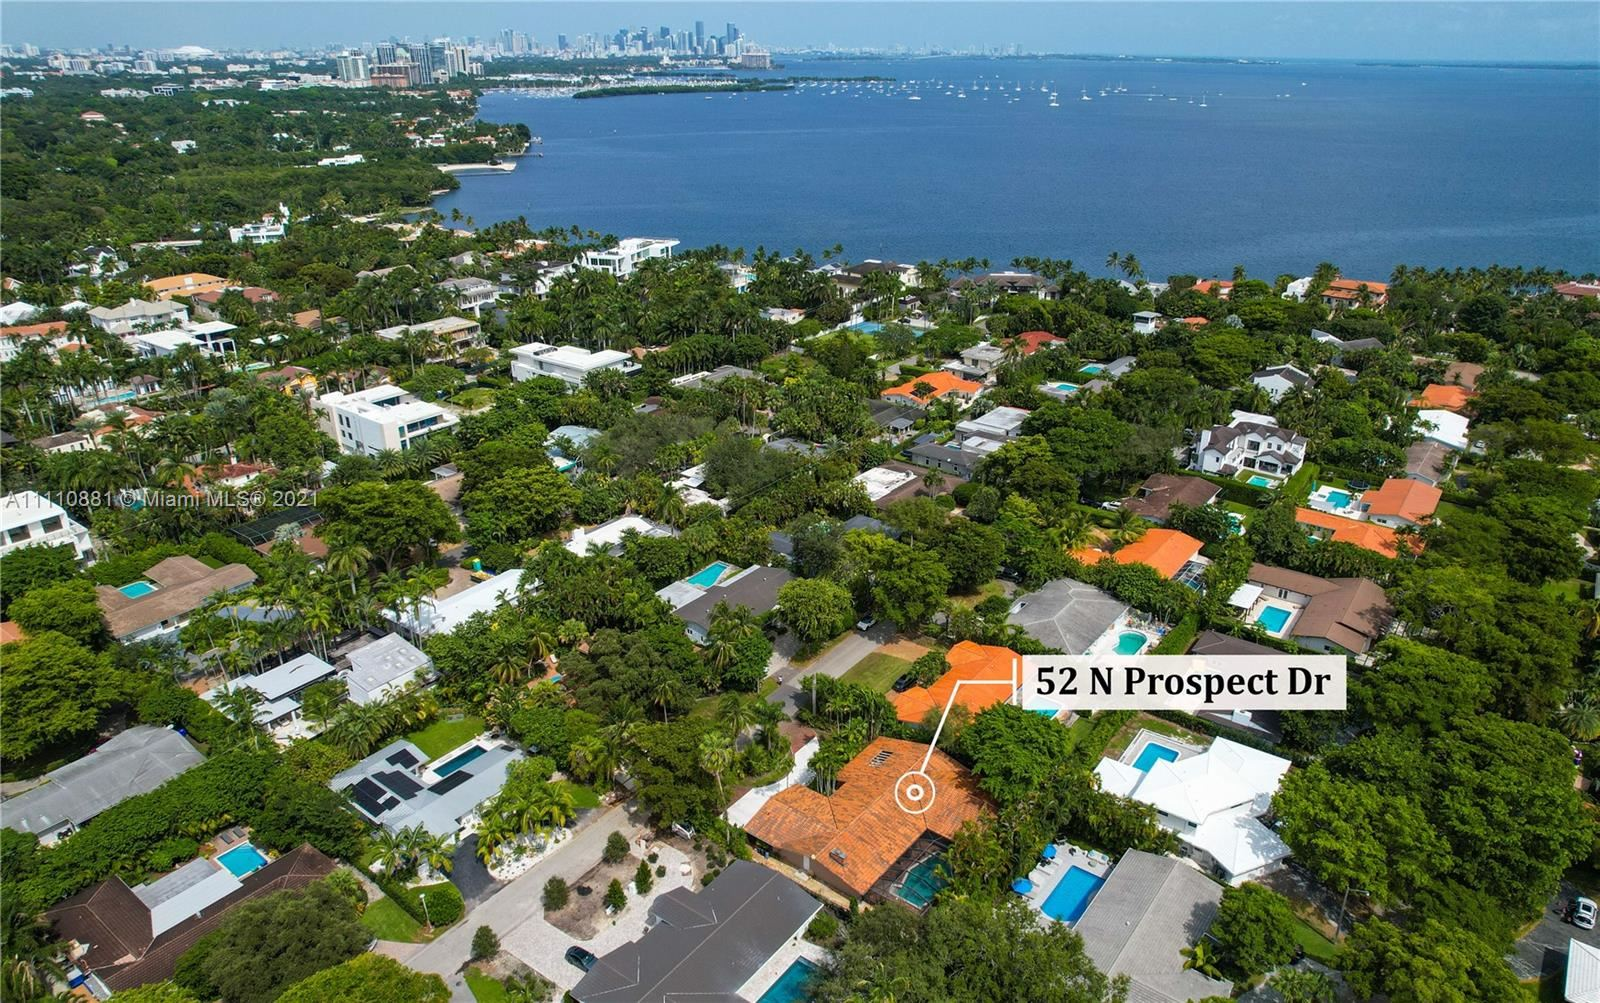 Photo of 52 N Prospect Dr, Coral Gables, FL 33133 (MLS # A11110881)